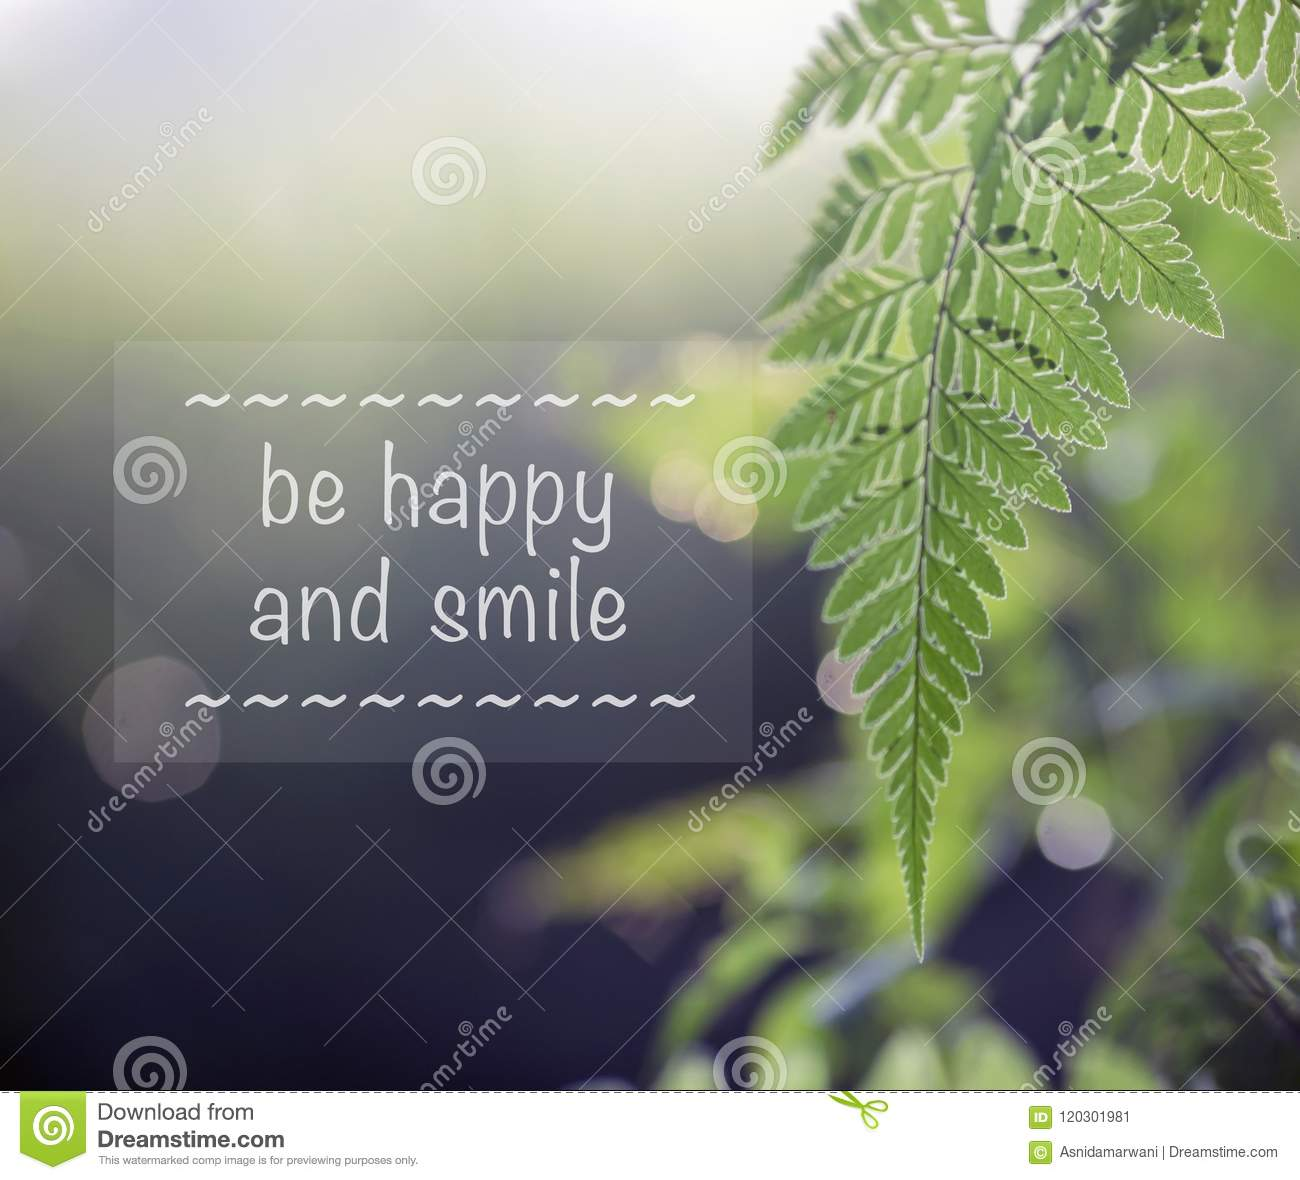 Life Motivational And Inspirational Quotes Be Happy And Smile